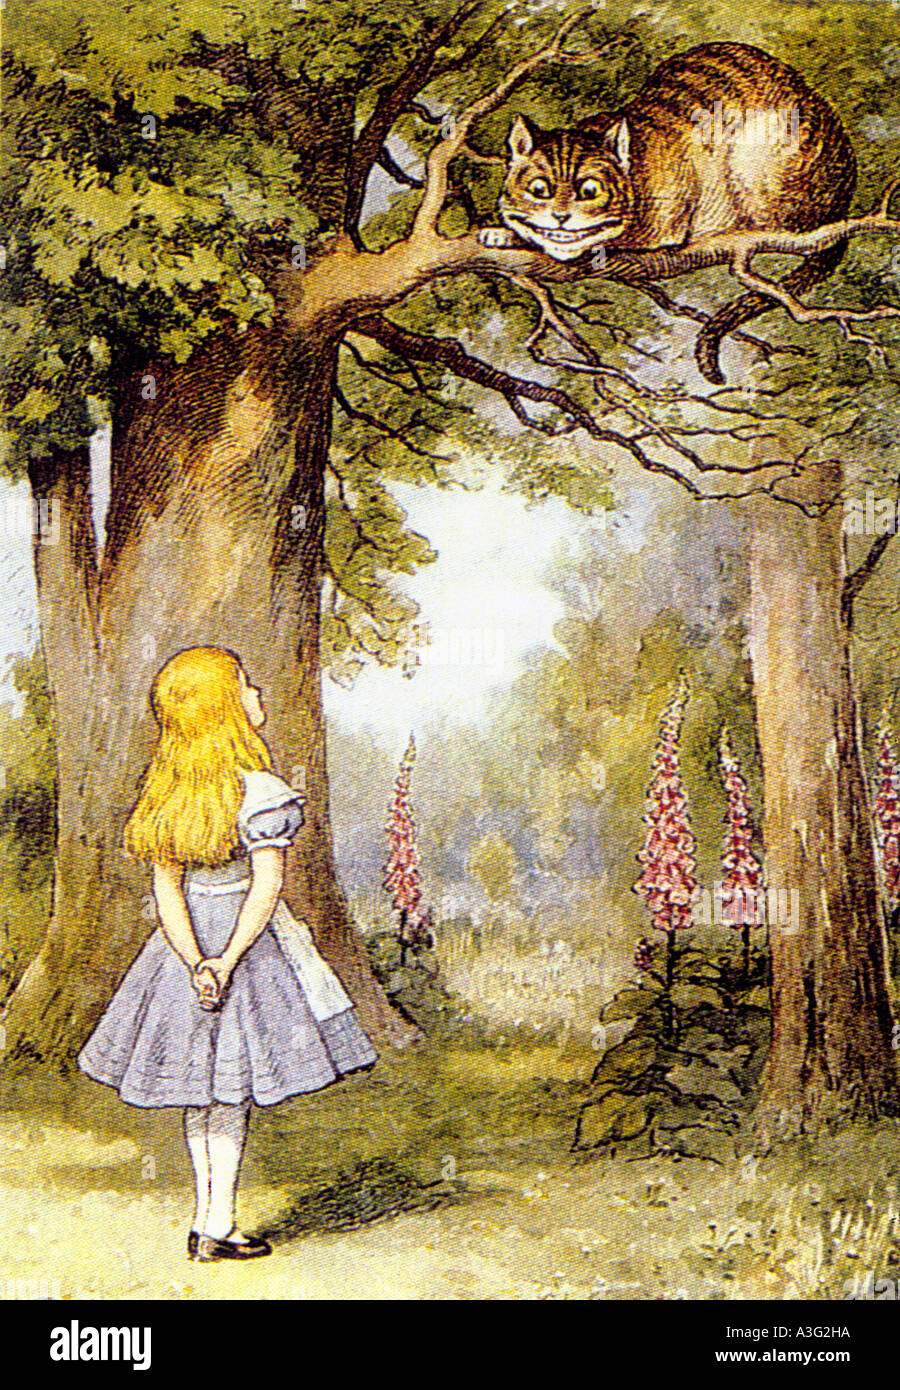 ALICE IN WONDERLAND  Illustration by Tenniel in 1907 edition of  book by Louis Carroll in which Alice meets the Cheshire Cat - Stock Image